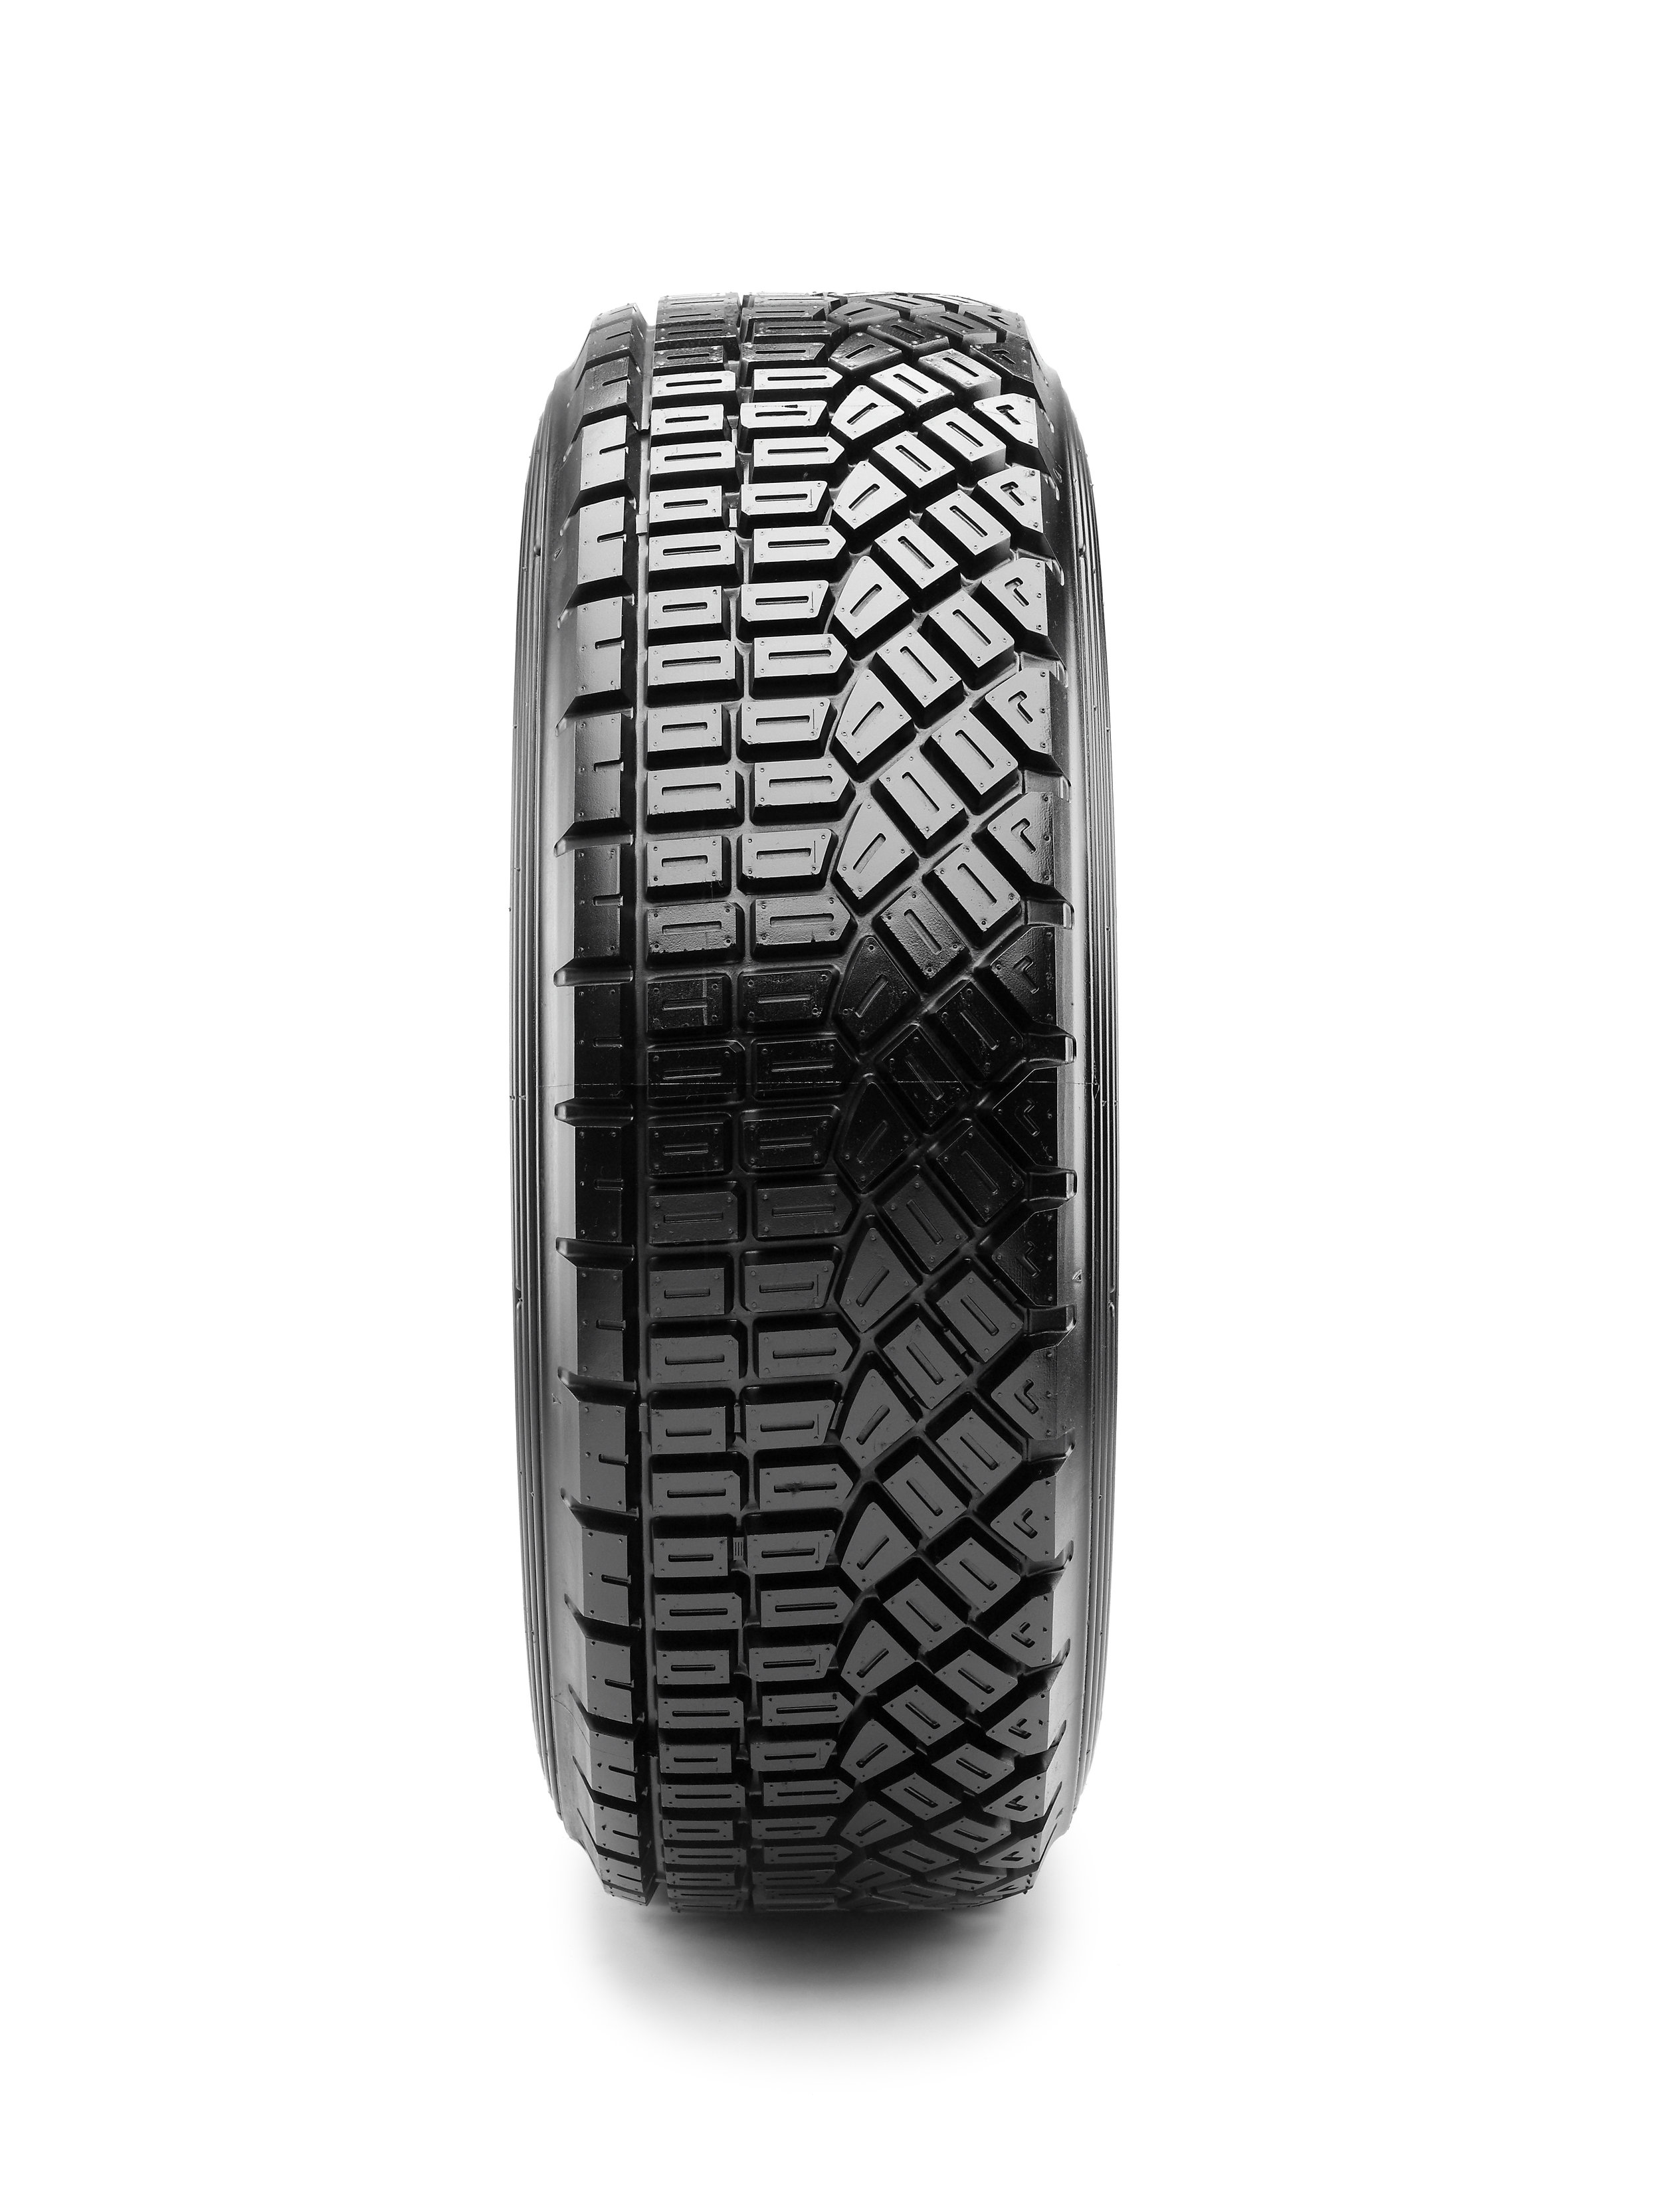 Maxxis Victra R19